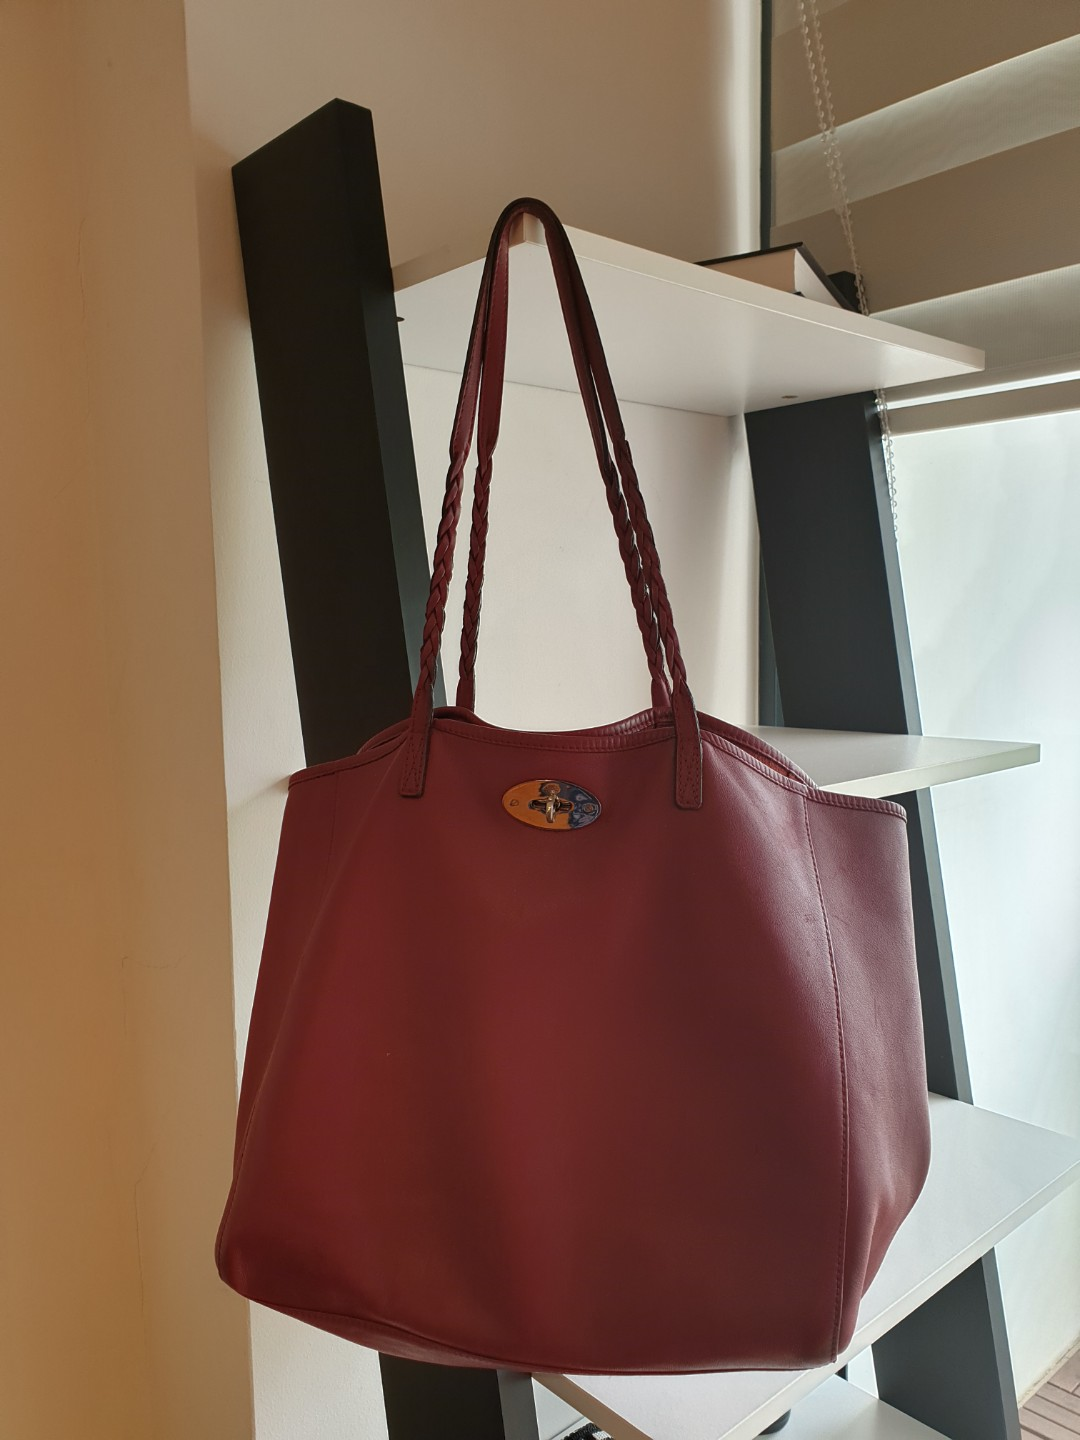 Mulberry Dorset Tote in Soft Napa Leather with Silver Hardware ... 07b69756c1124